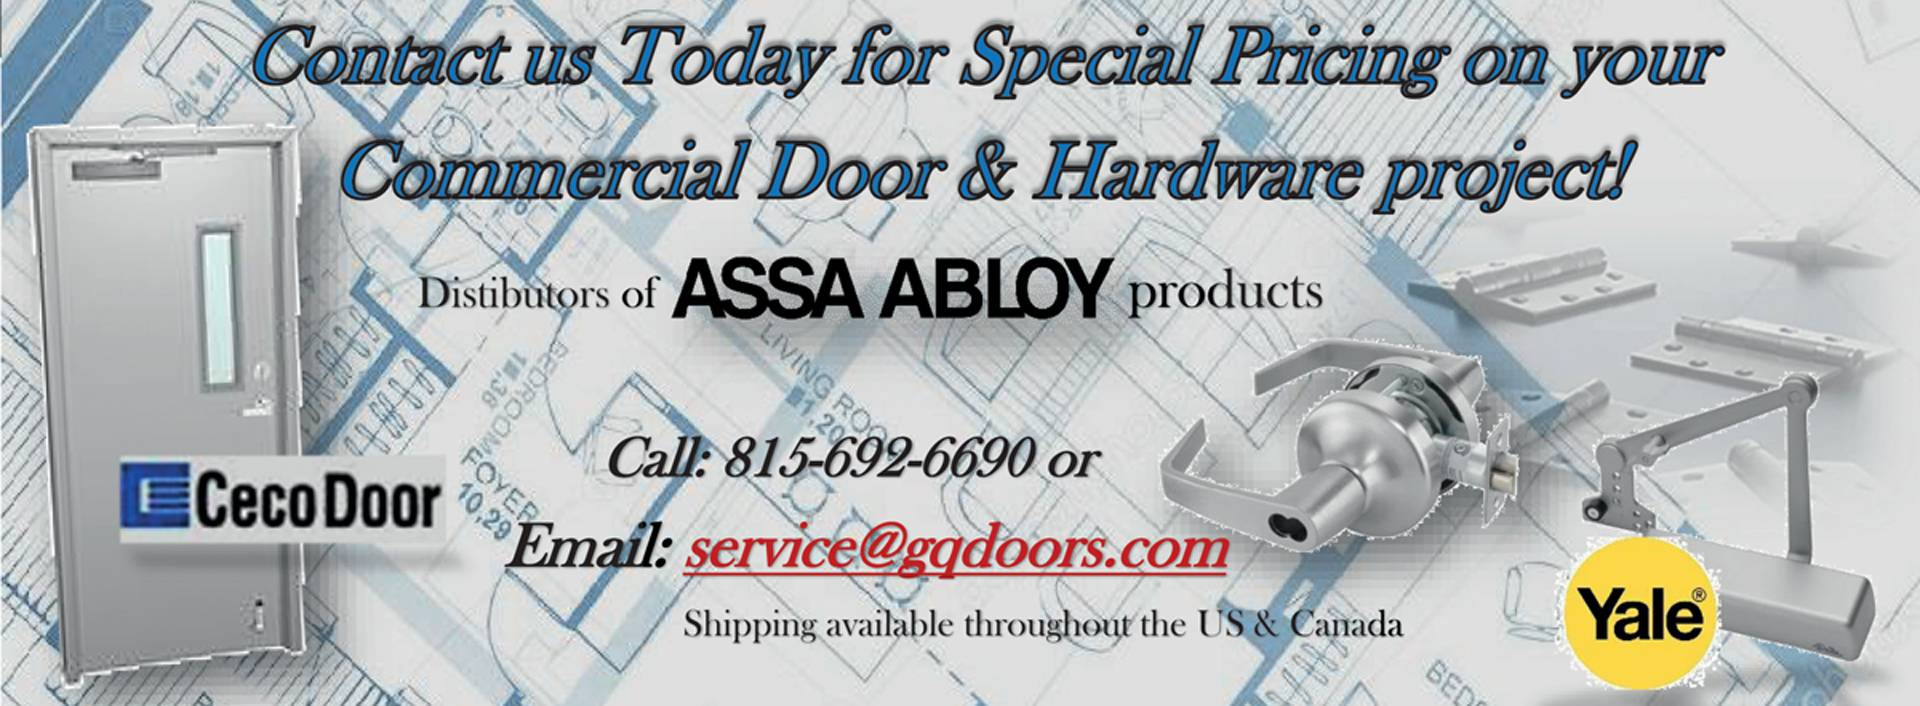 Commercial Door & Hardware project